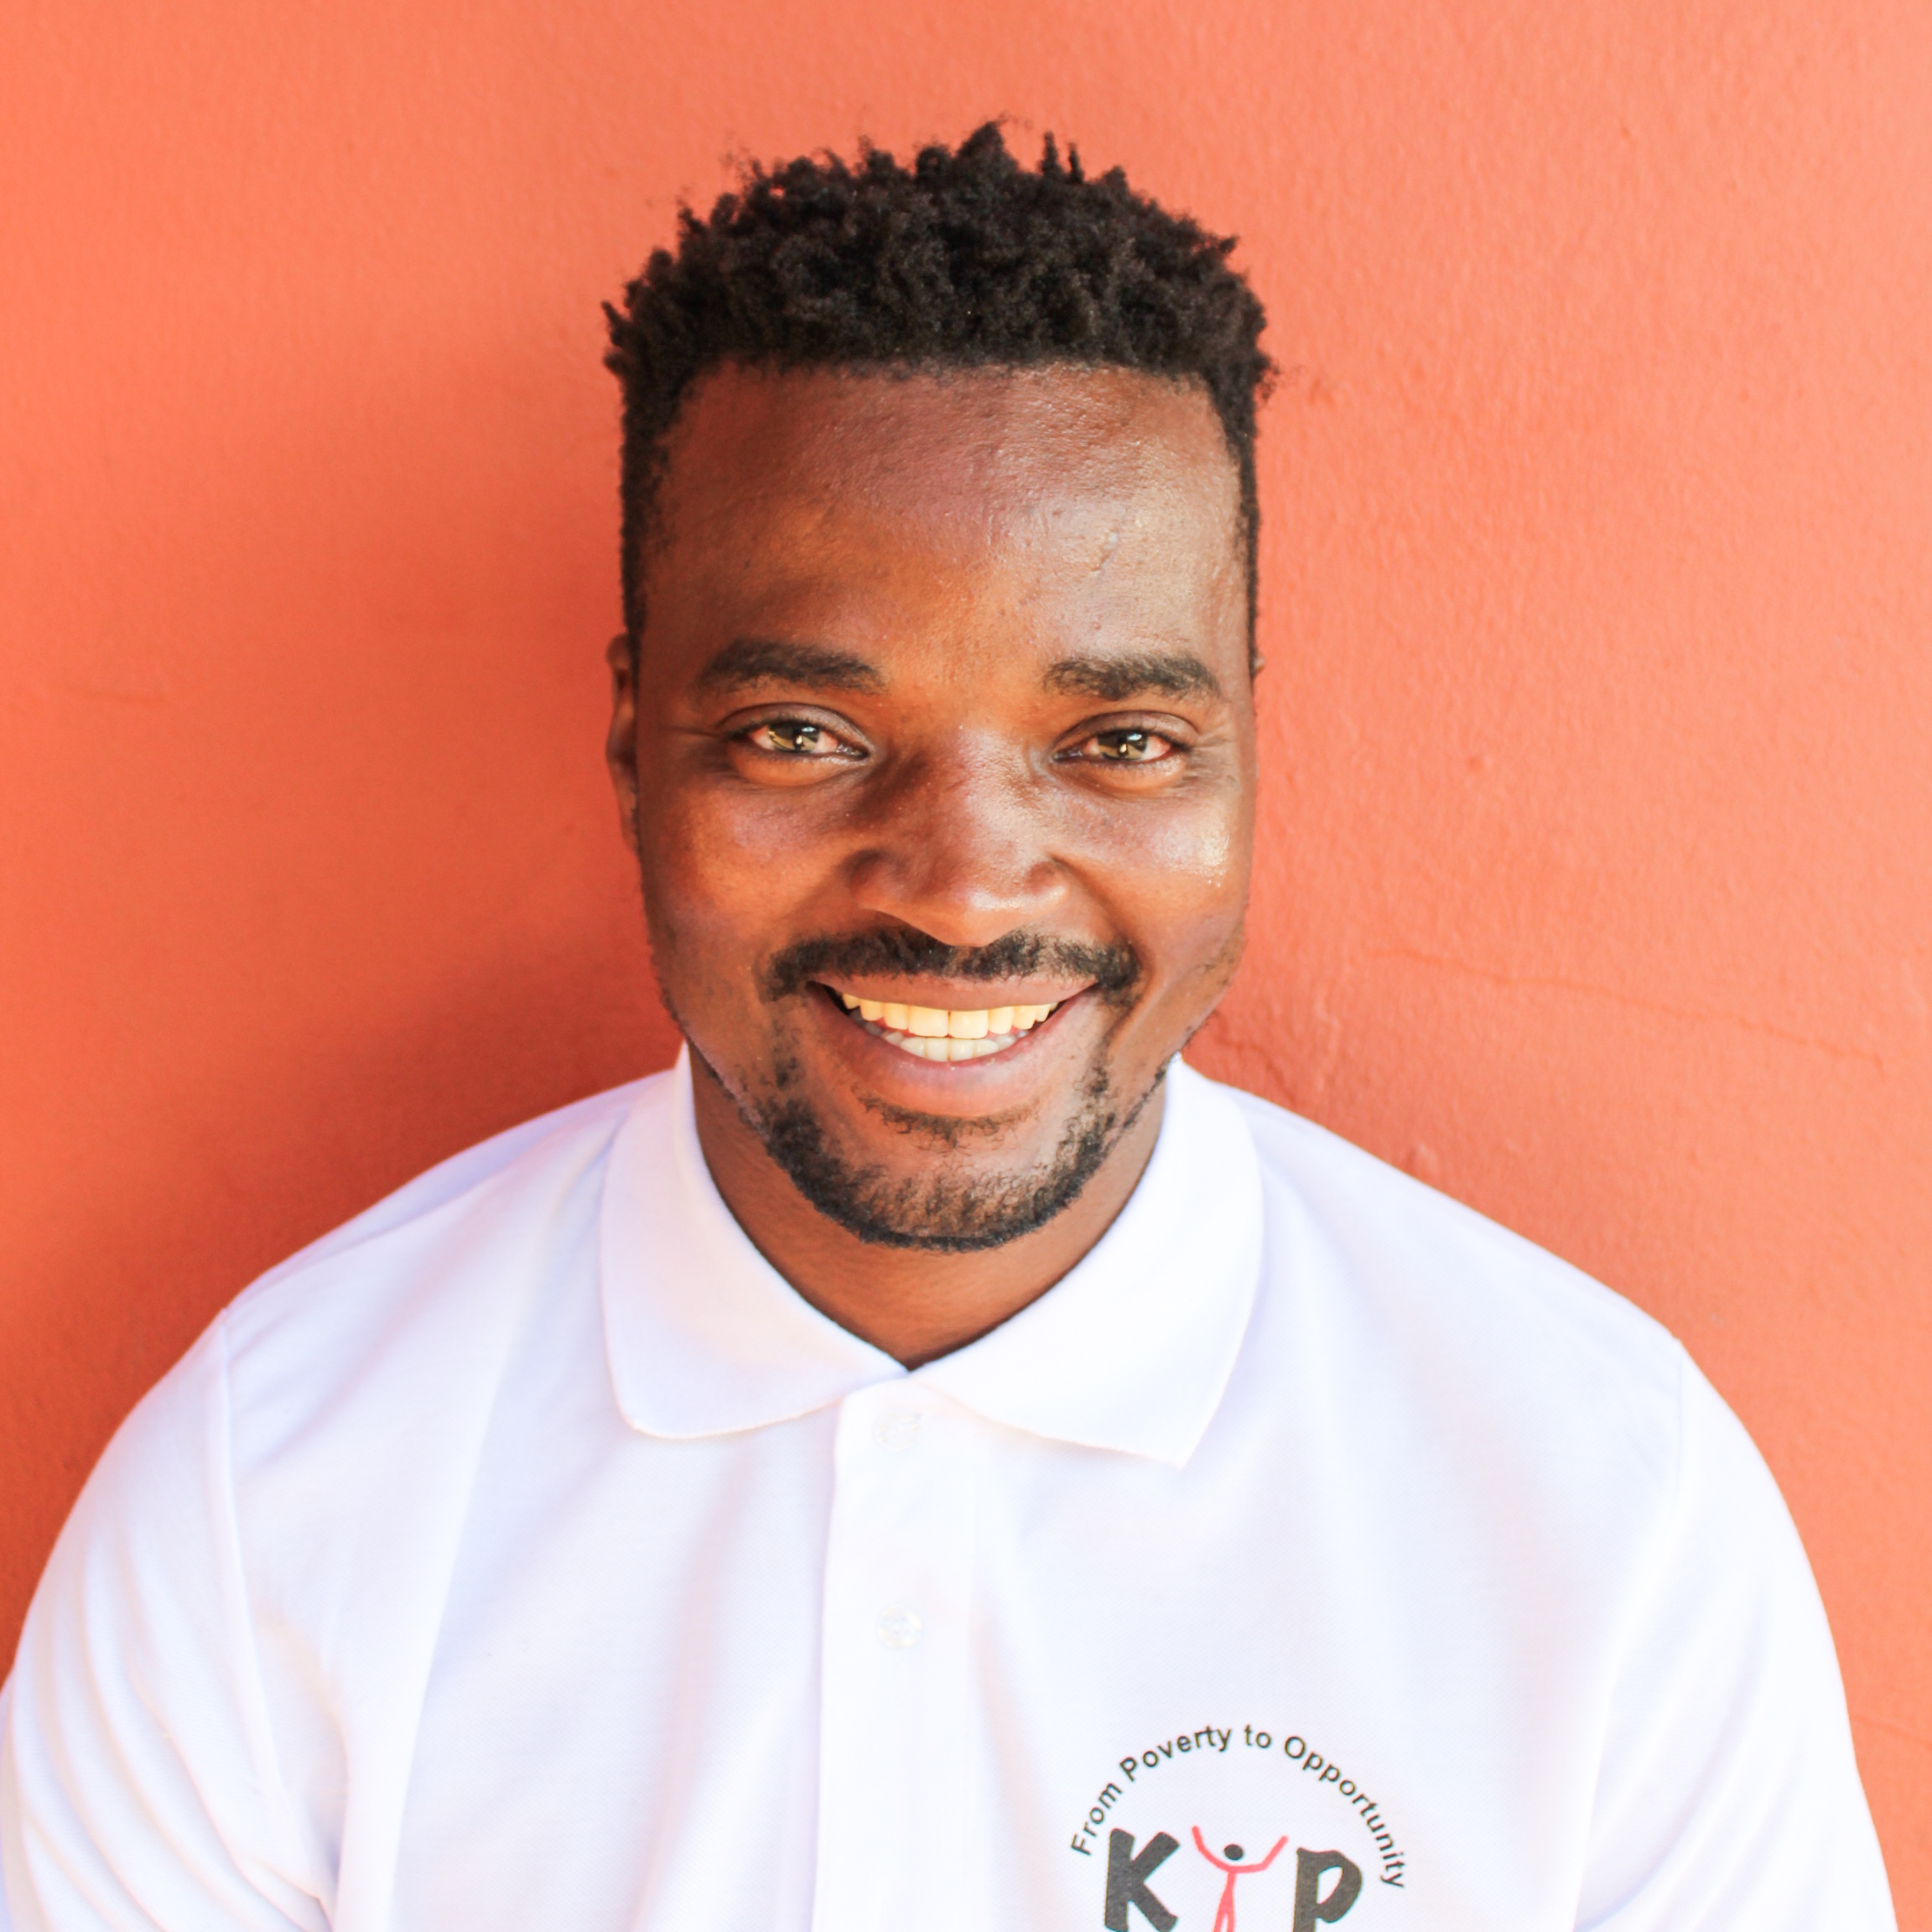 Collen Tshazi: IT Program Coordinator    ctshazi@kliptownyouthprogram.org.za   Collen Tshazi is one of the co-founders of KYP and the youngest person to be selected into the KYP leadership team by KYP members in KYP's inaugural year. Collen continued to serve on the leadership until December 2008, when he decided to focus on his studies for his Grade 12 year, 2009, and give his best effort in the KYP tutoring program. After he completed his matric, Collen went to college through the support of KYP, and studied IT Systems Engineering. After he completed his qualification in IT, Collen came back to KYP and served as the IT Manager until March, 2015. Collen then went into the corporate world to gain more knowledge on how things are done in IT. Collen worked for one of the big five banks in South Africa, the First National Bank (FNB), as the IT Helpdesk Technician. He was the first point of contact when there were system problems at a branch and/or ATM. Collen worked for FNB for fours years and is now back at KYP, in his previous position of IT Manager. He is so happy to be back in the organization and to continue to share his expertise in IT with KYP staff and members. Collen is excited to be implementing many things he learned about in the corporate world to improve the KYP IT infrastructure, and his expertise will really grow and capacitate us.